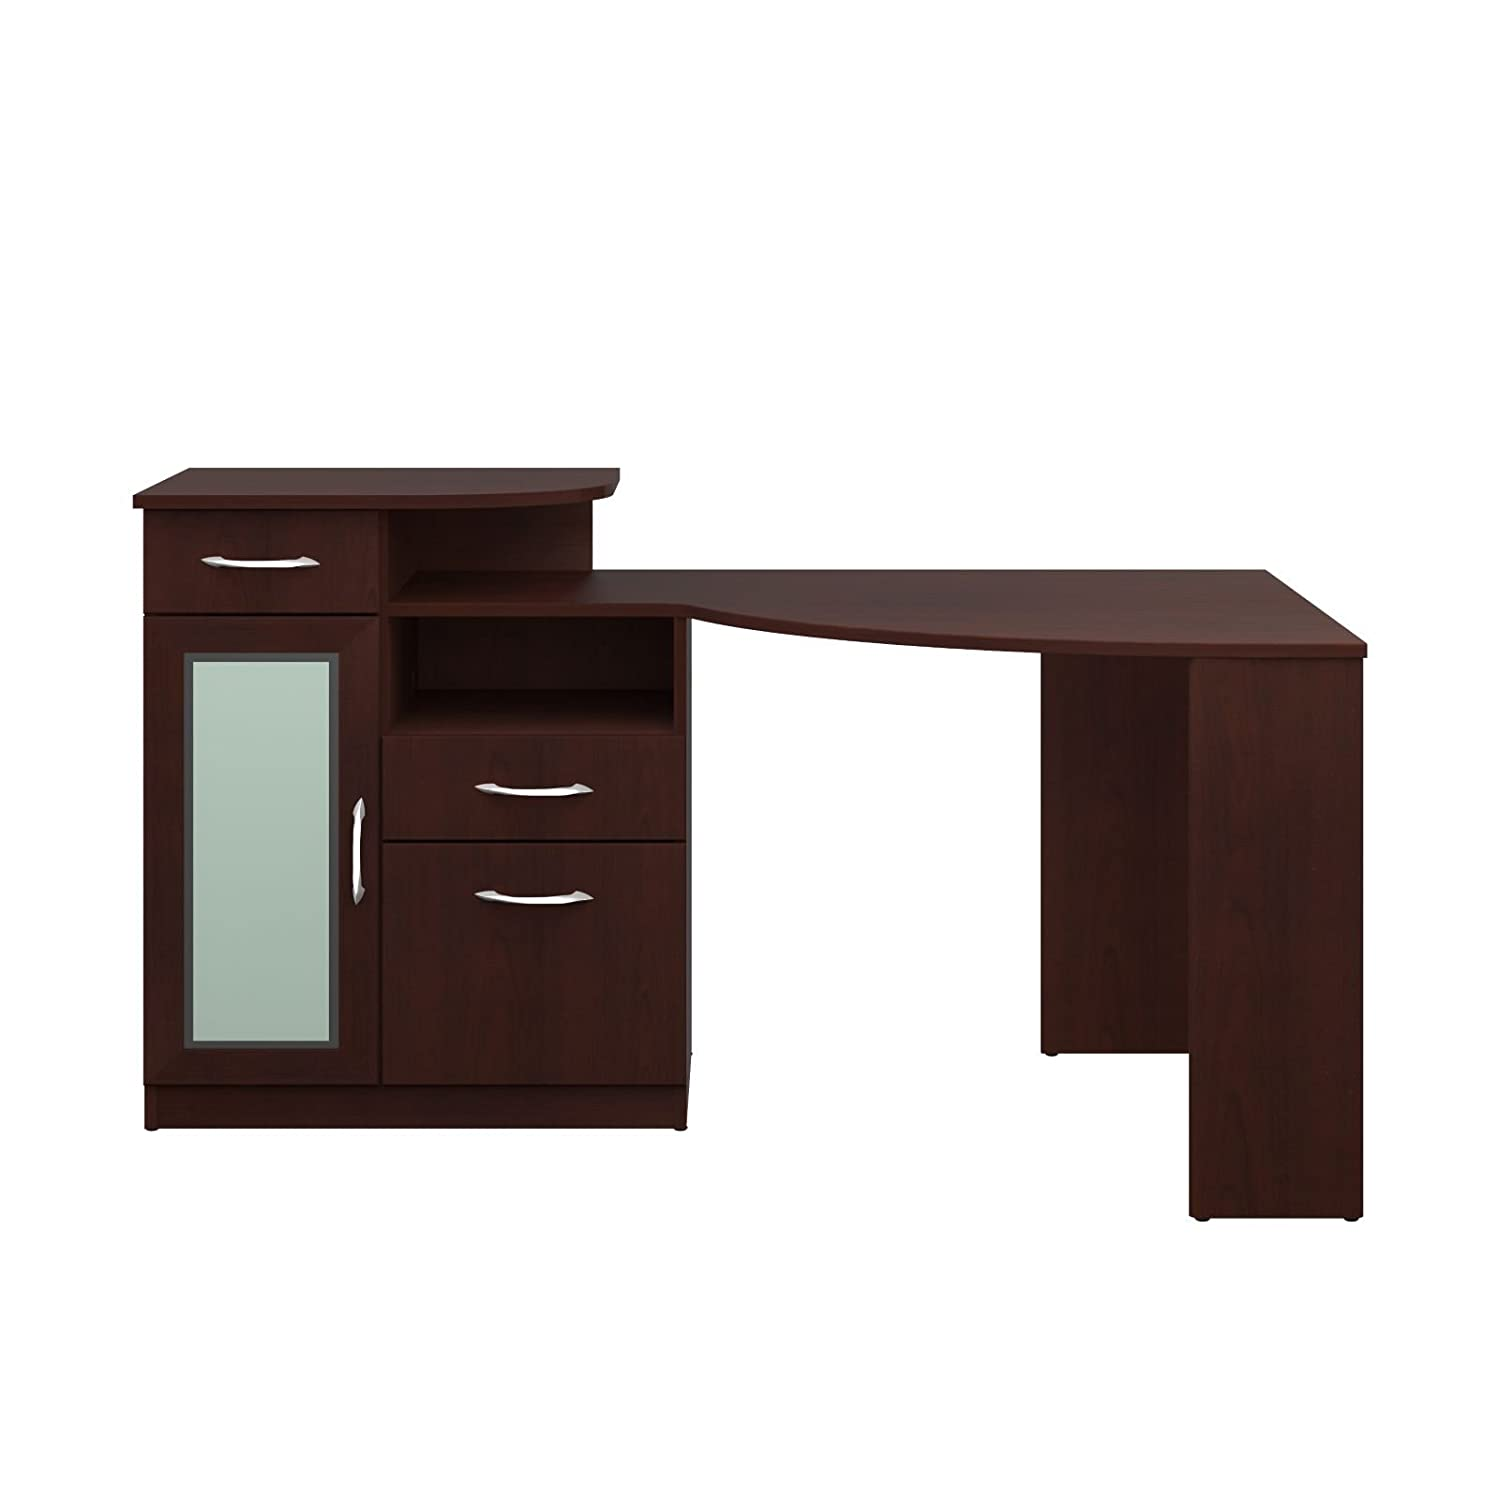 Amazon com  Bush Furniture Vantage Corner Desk  Harvest Cherry  Kitchen    Dining. Amazon com  Bush Furniture Vantage Corner Desk  Harvest Cherry